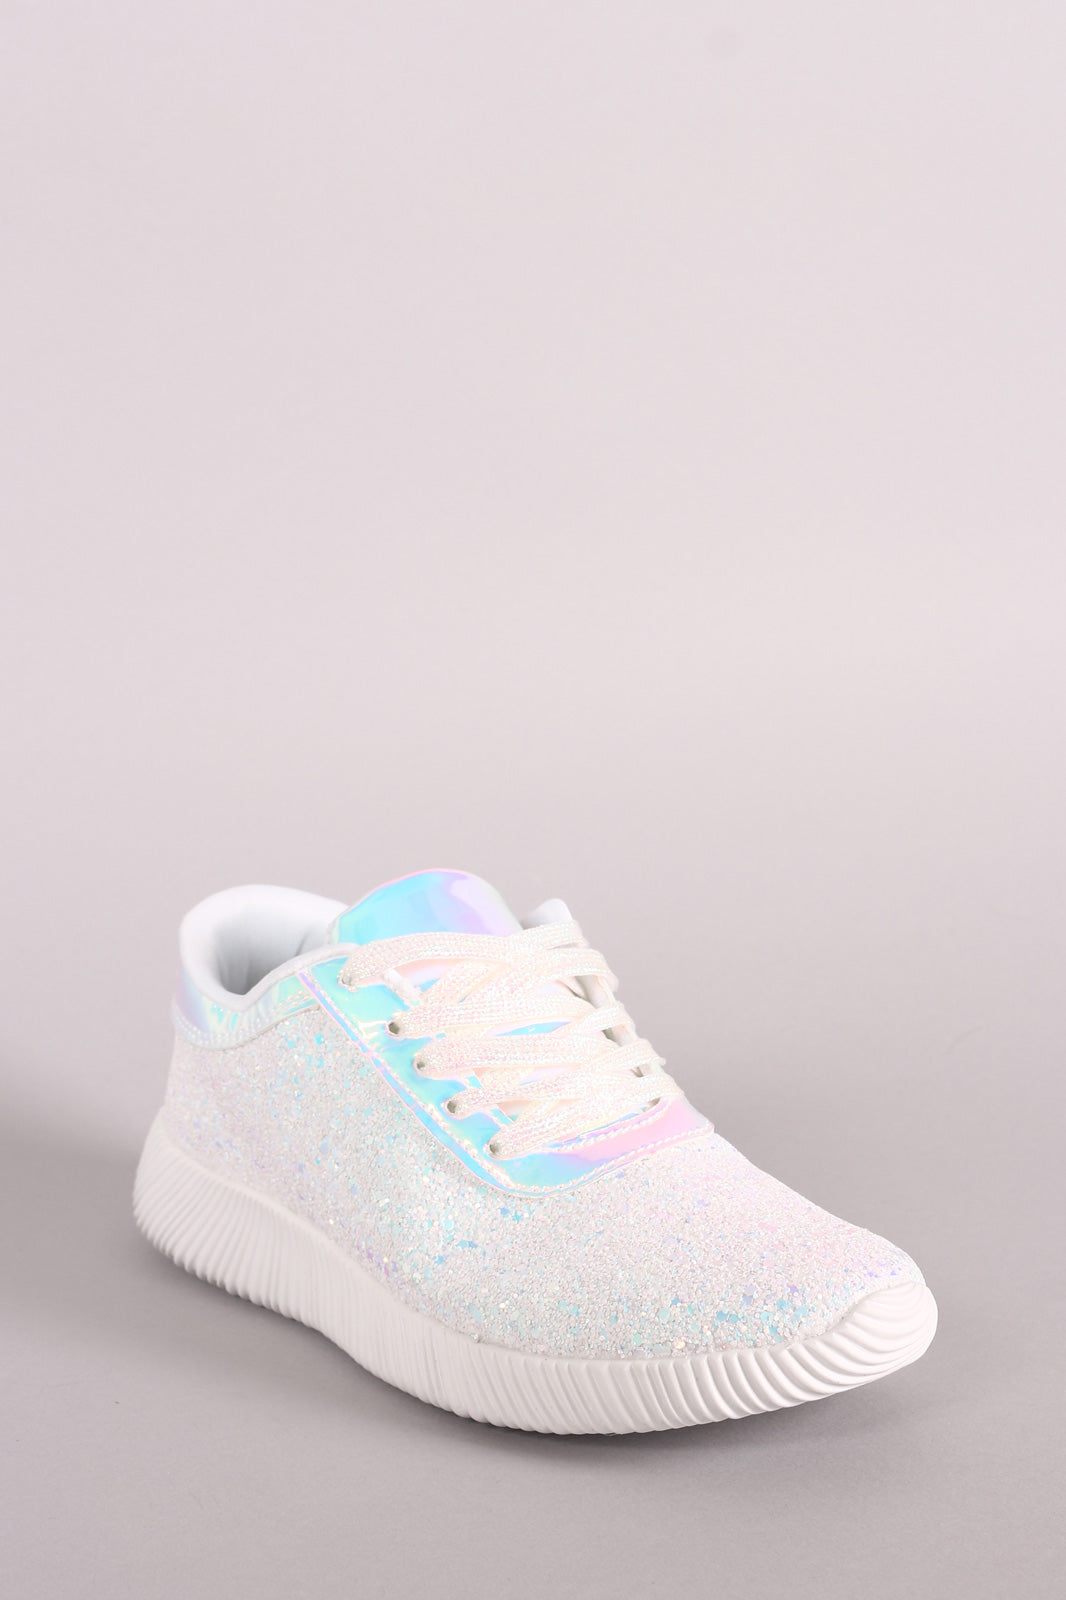 Holographic Ridge Sole Glitter Lace Up Sneakers